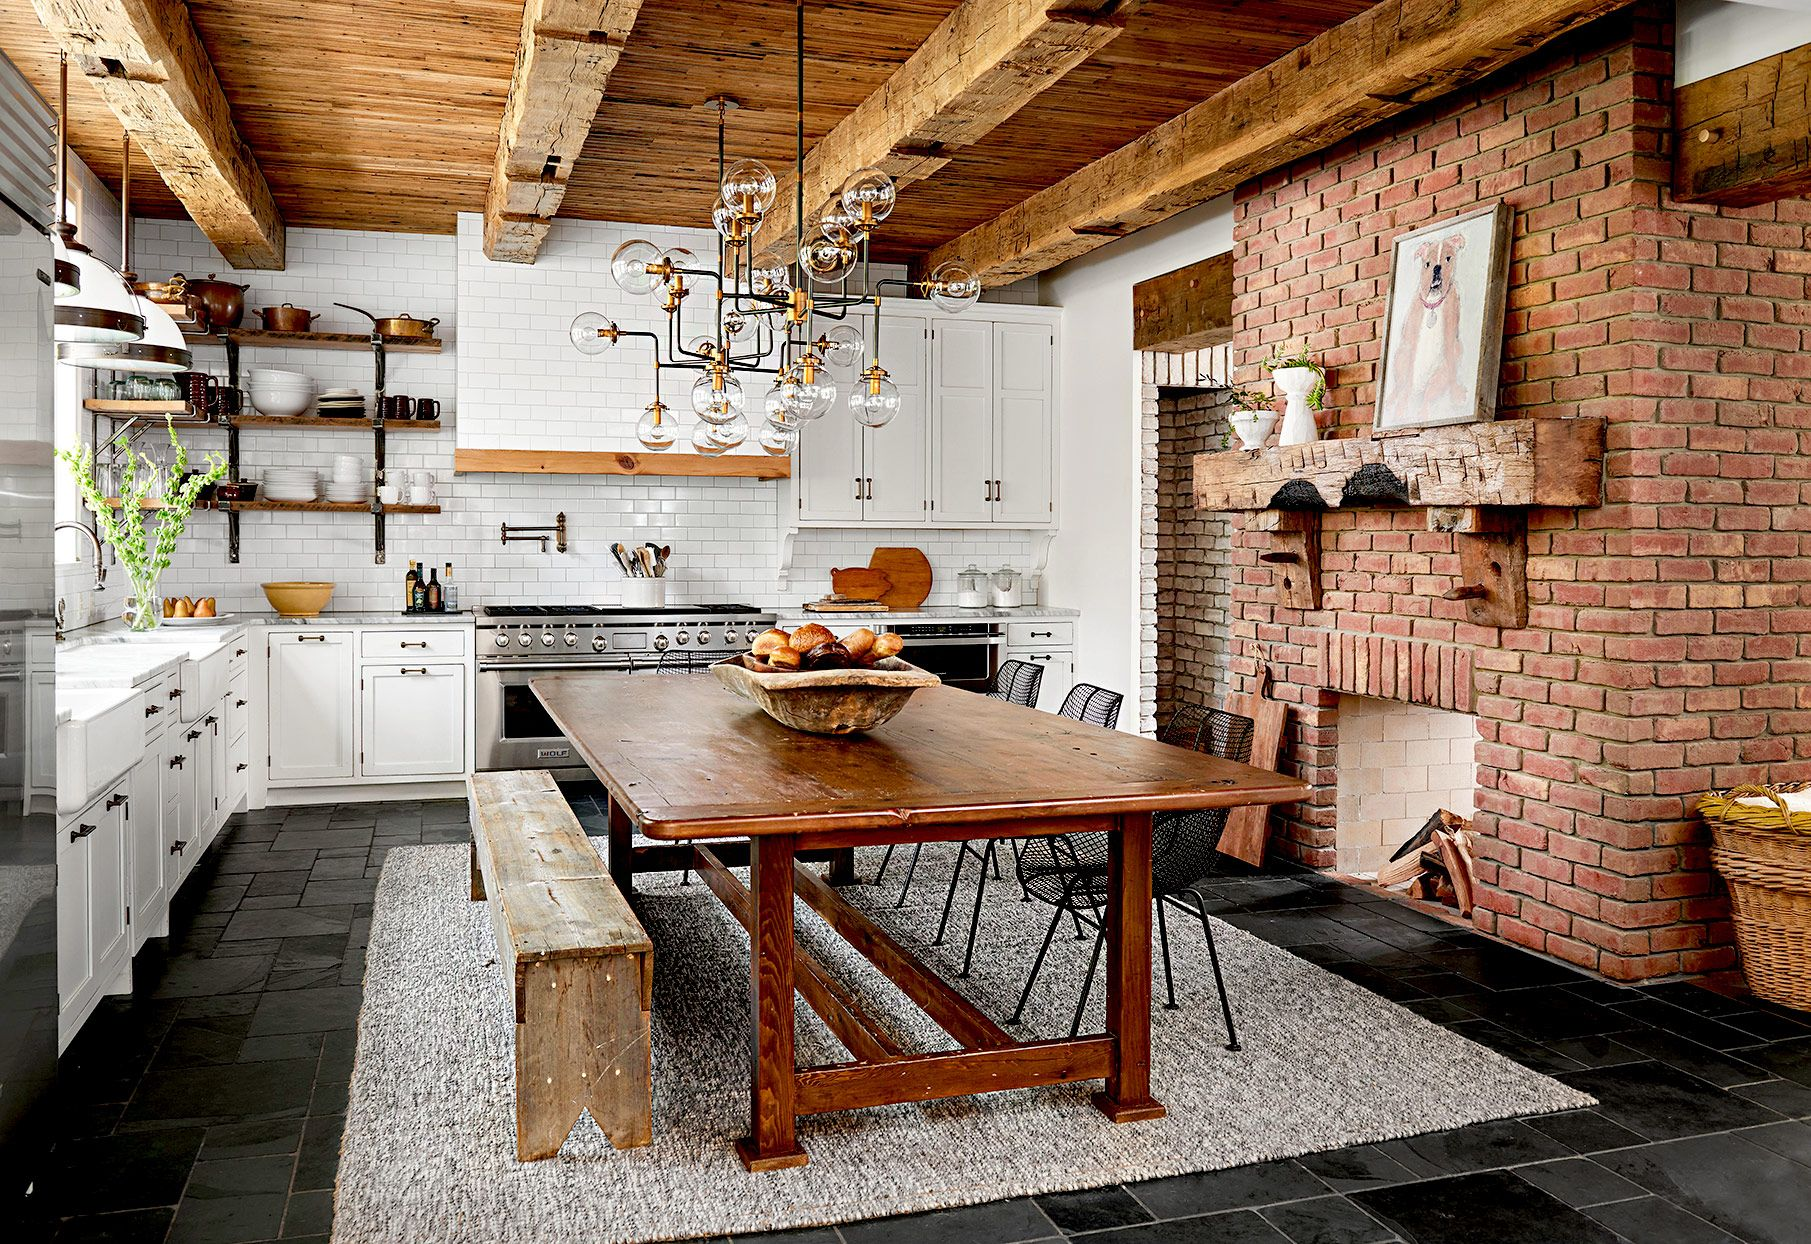 23 Farmhouse Kitchen Ideas for a Perfectly Cozy Cooking Space